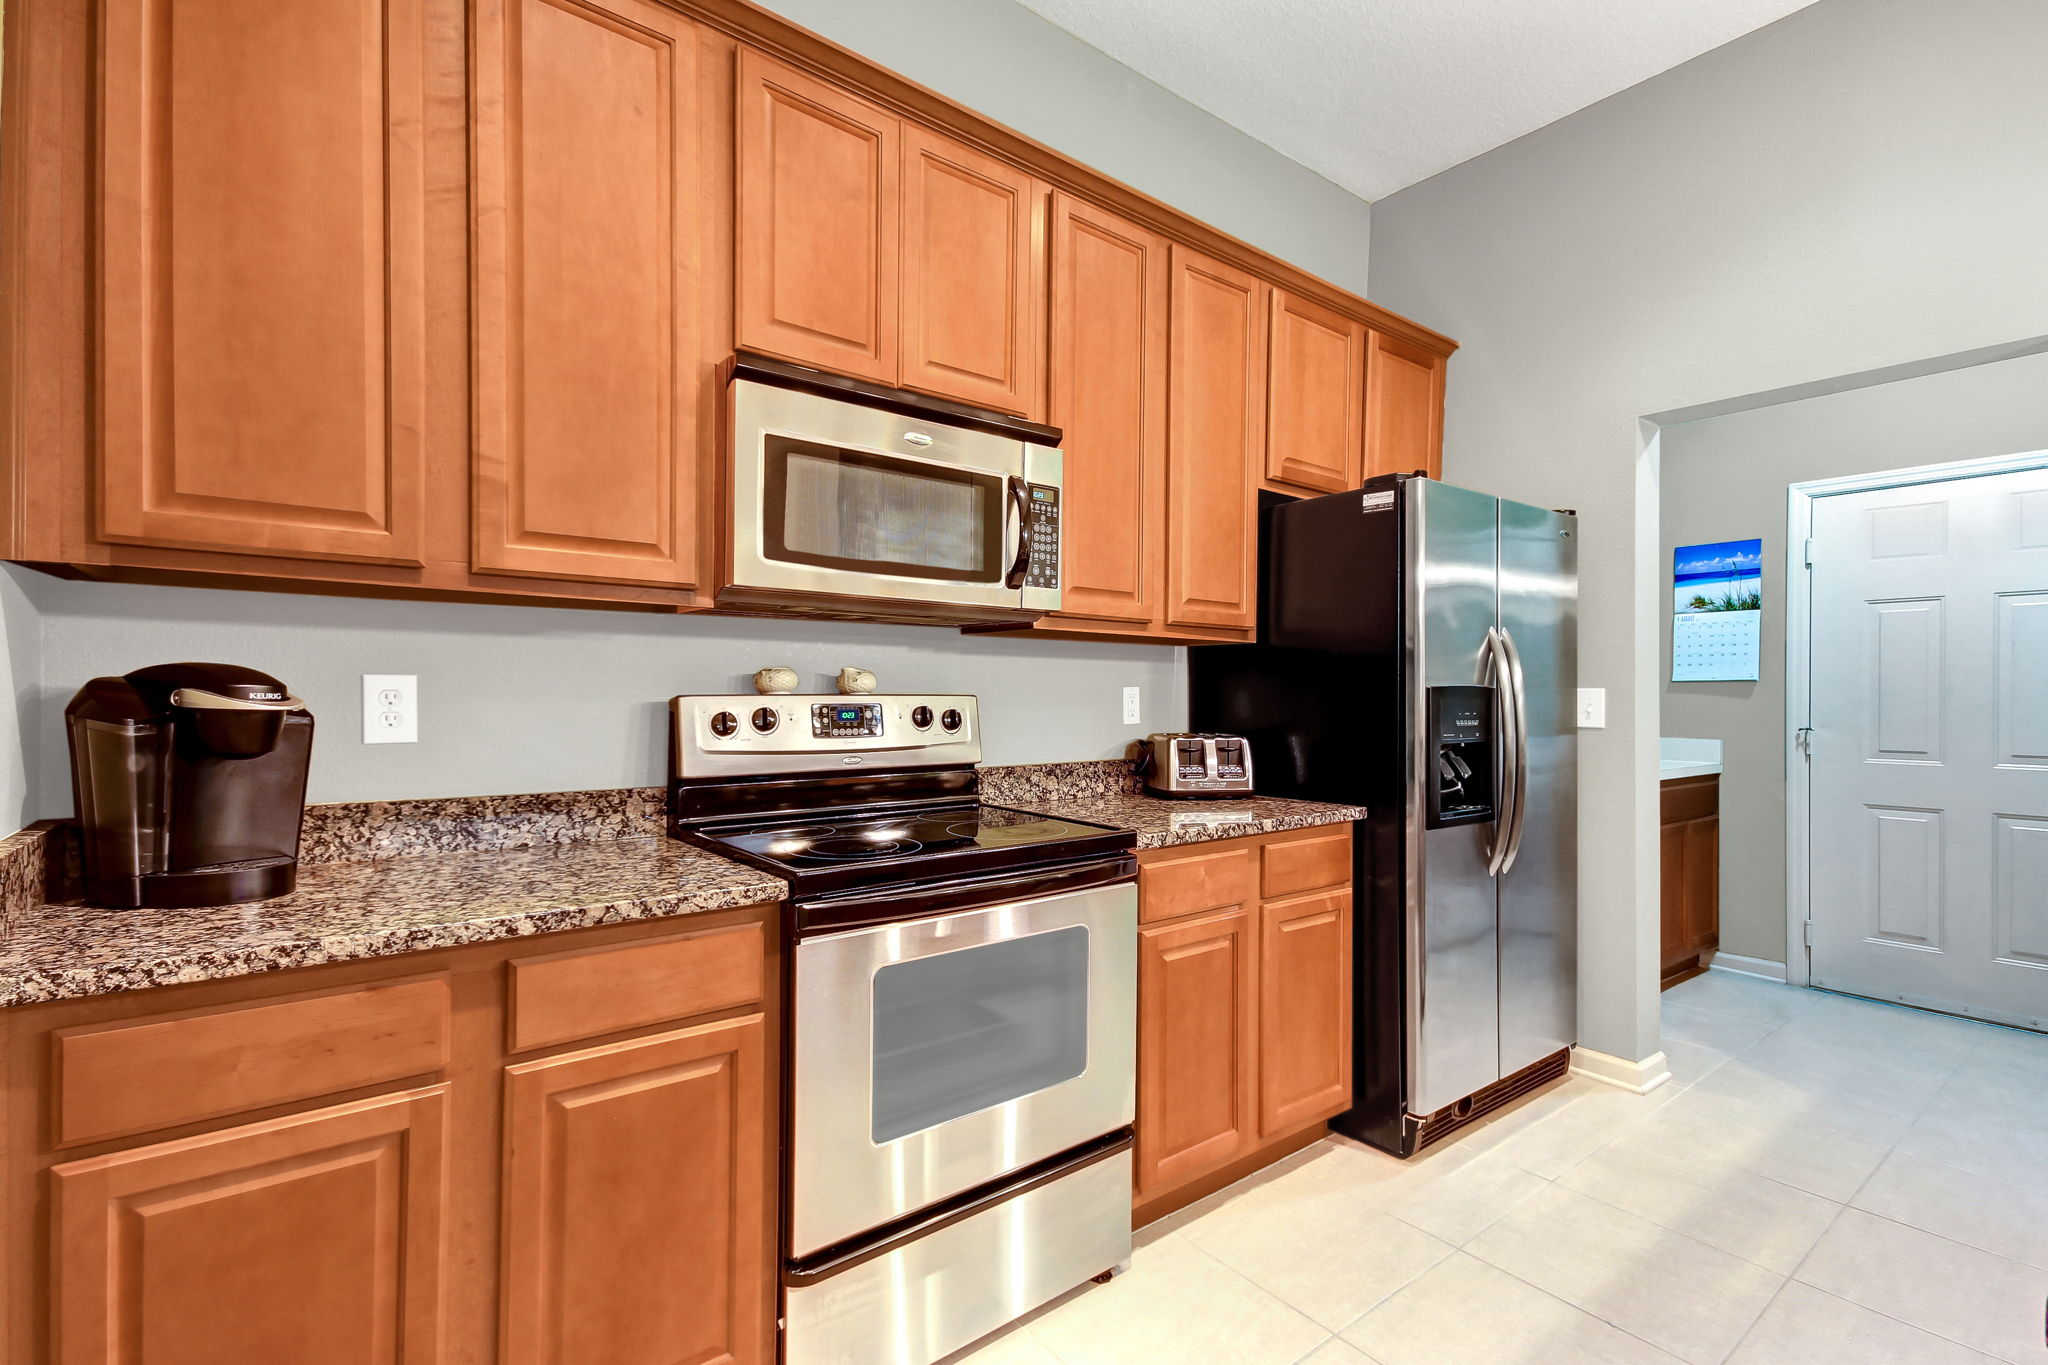 Kitchen opens to butler pantry and utility room